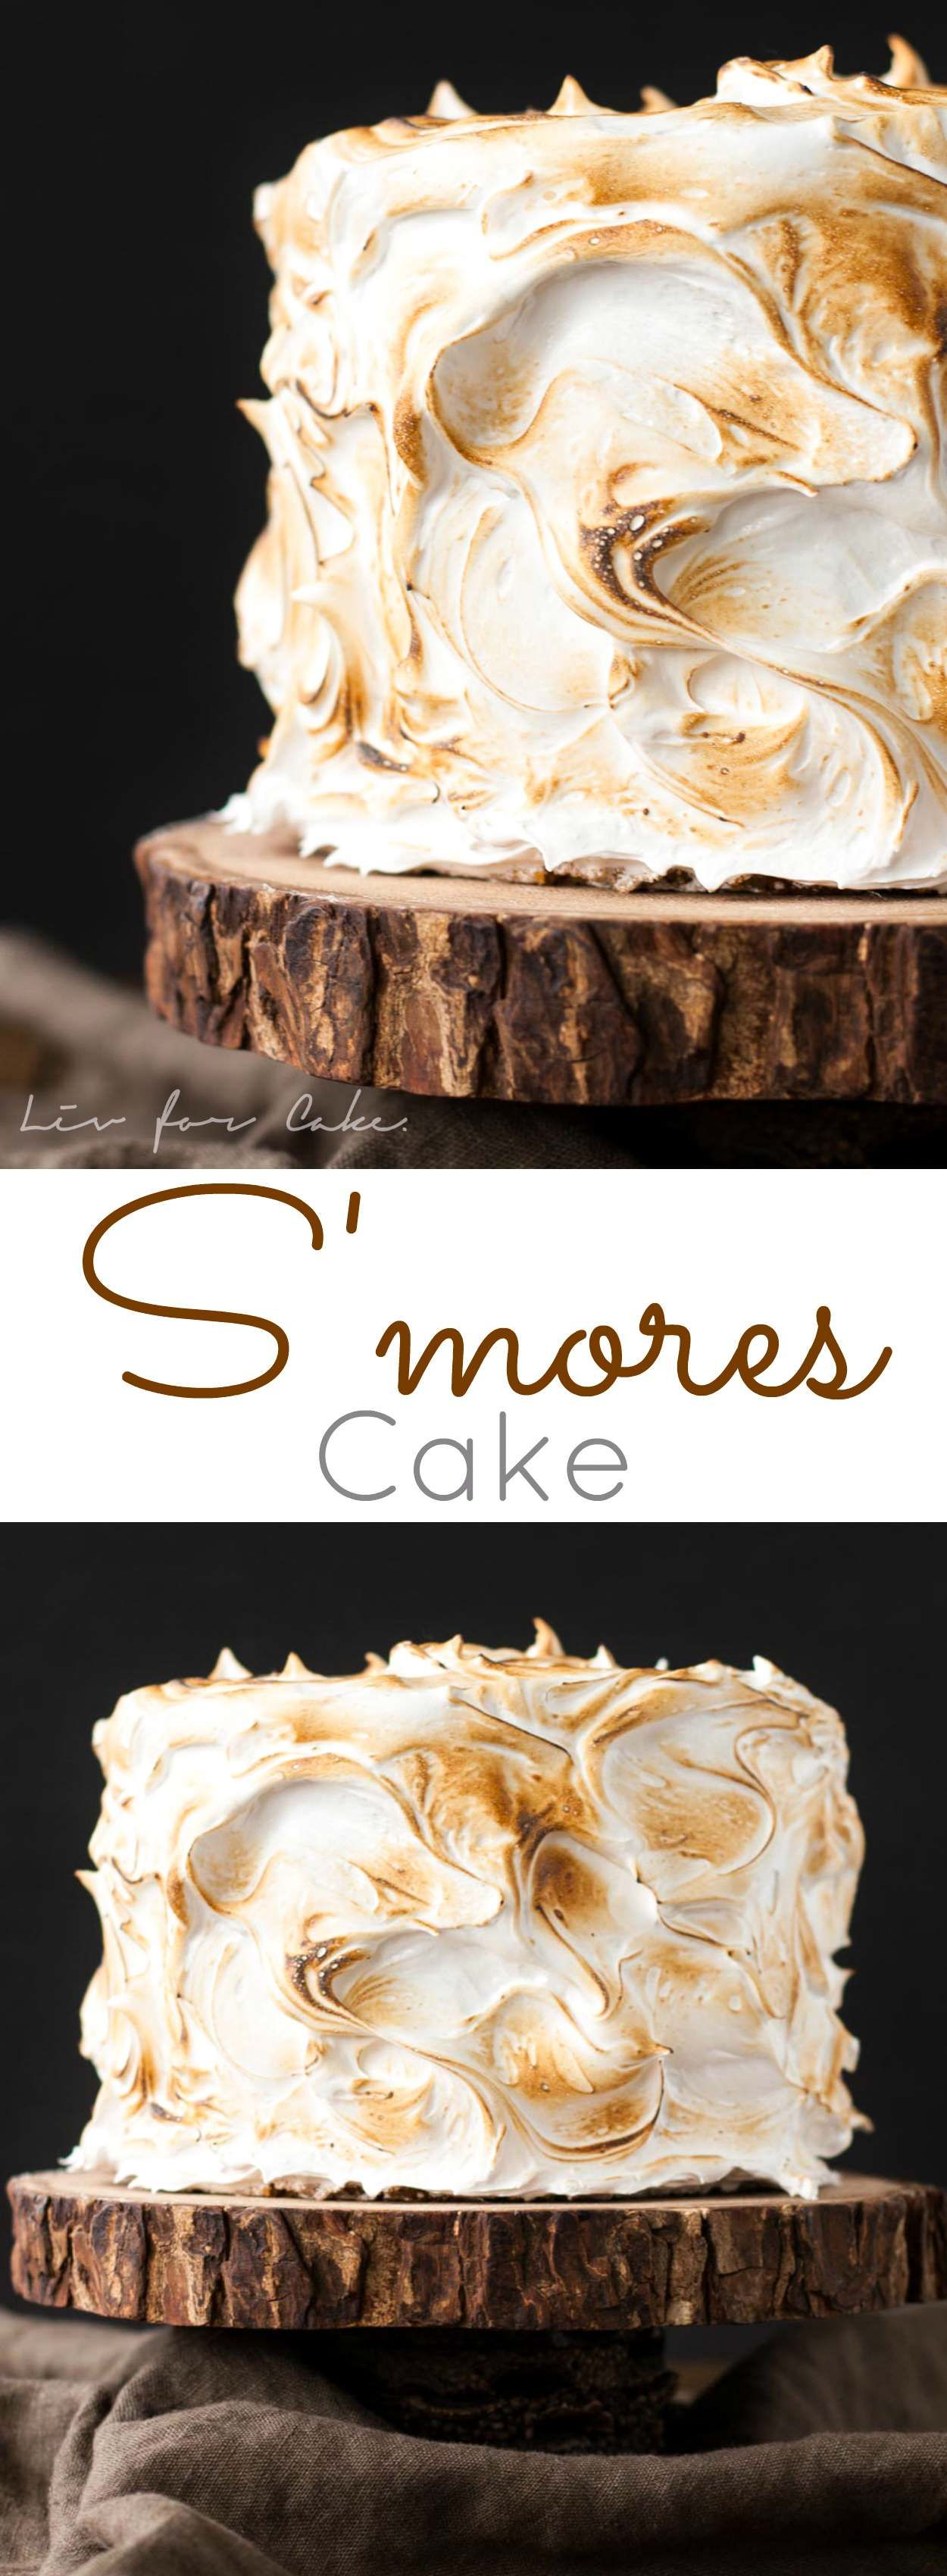 This S'mores Cake is better than the real thing! A graham cracker cake filled… #marshmallowflufffrosting